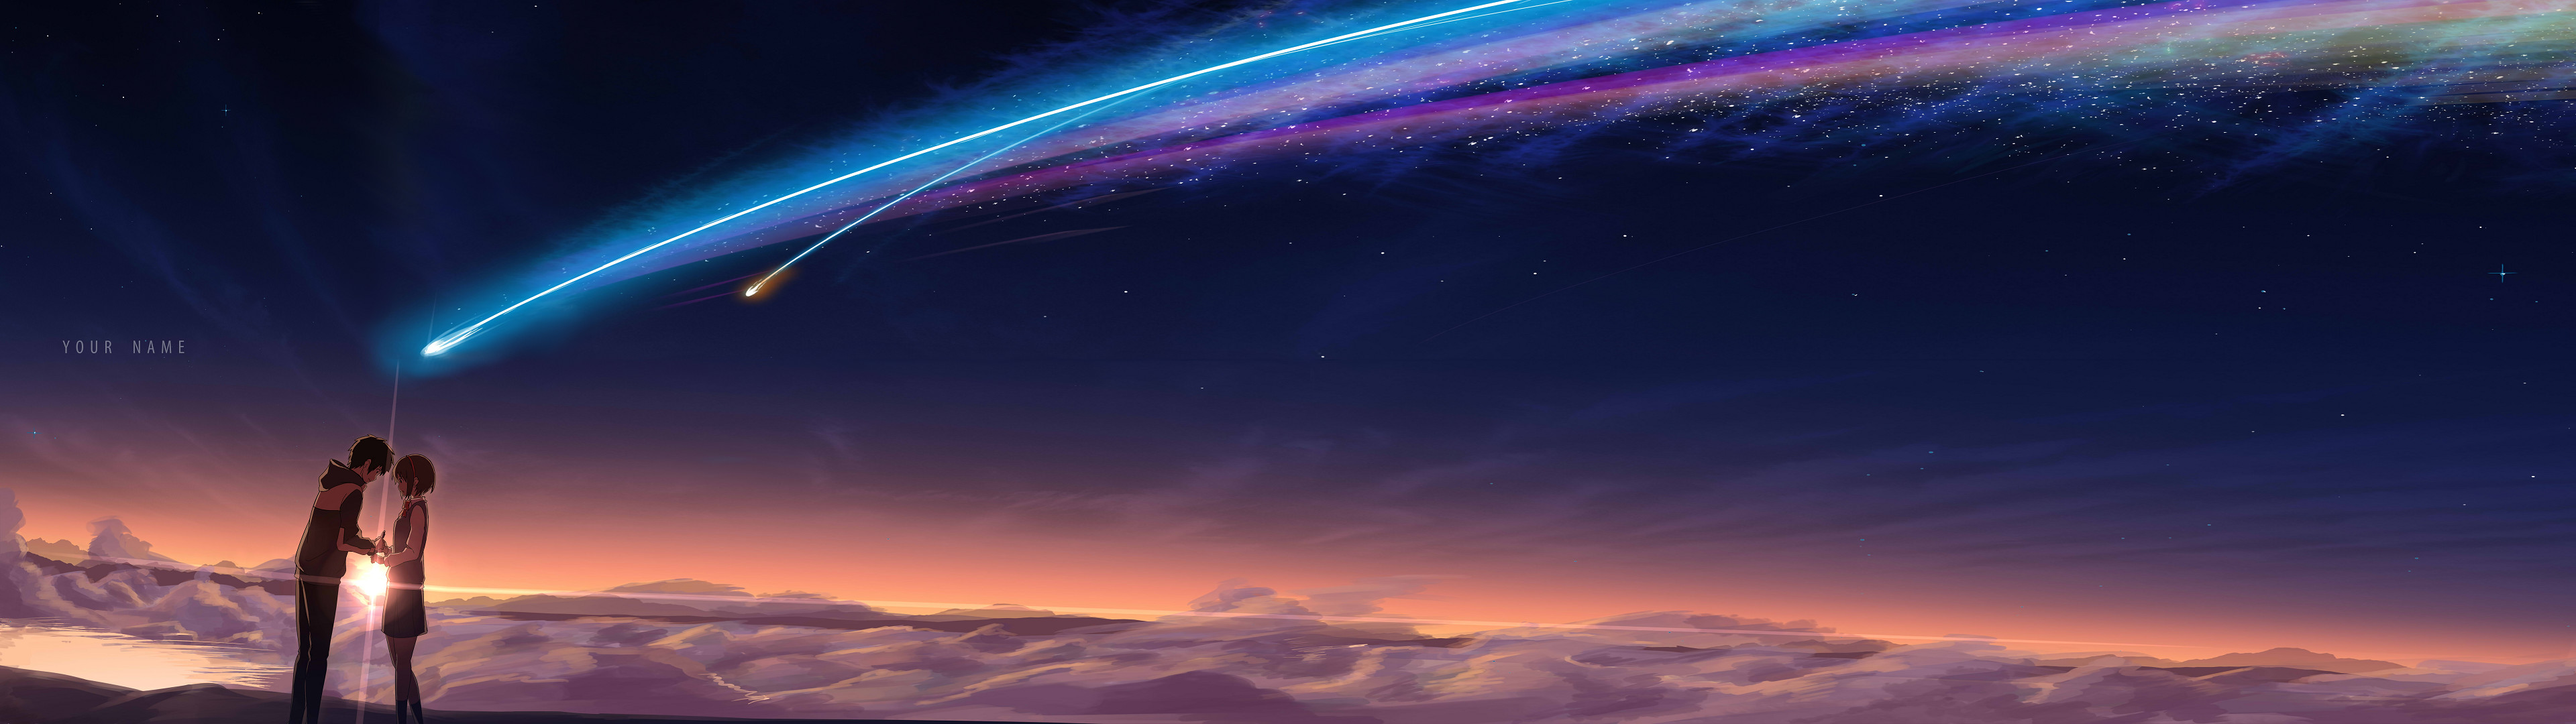 [3840×1080] Kimi no na wa. Your Name. Hastily done dual monitor edit of a  widely available wallpaper.